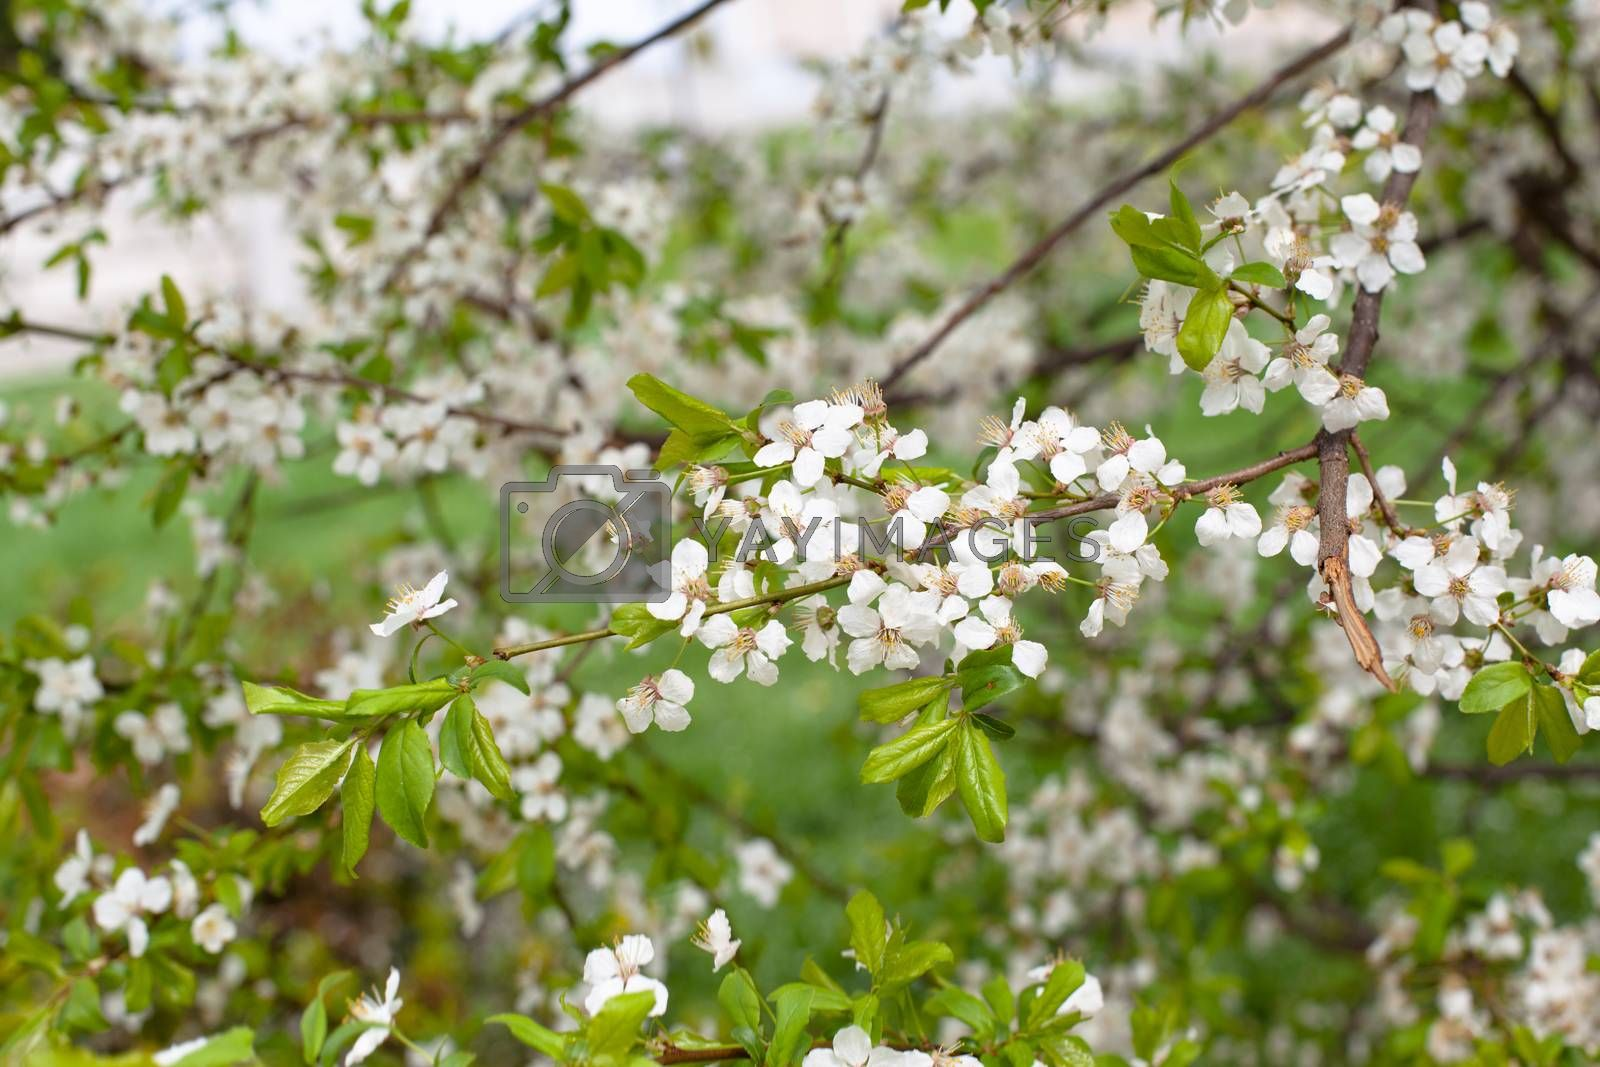 Small white apple flowers burgeons and flowers on a branch